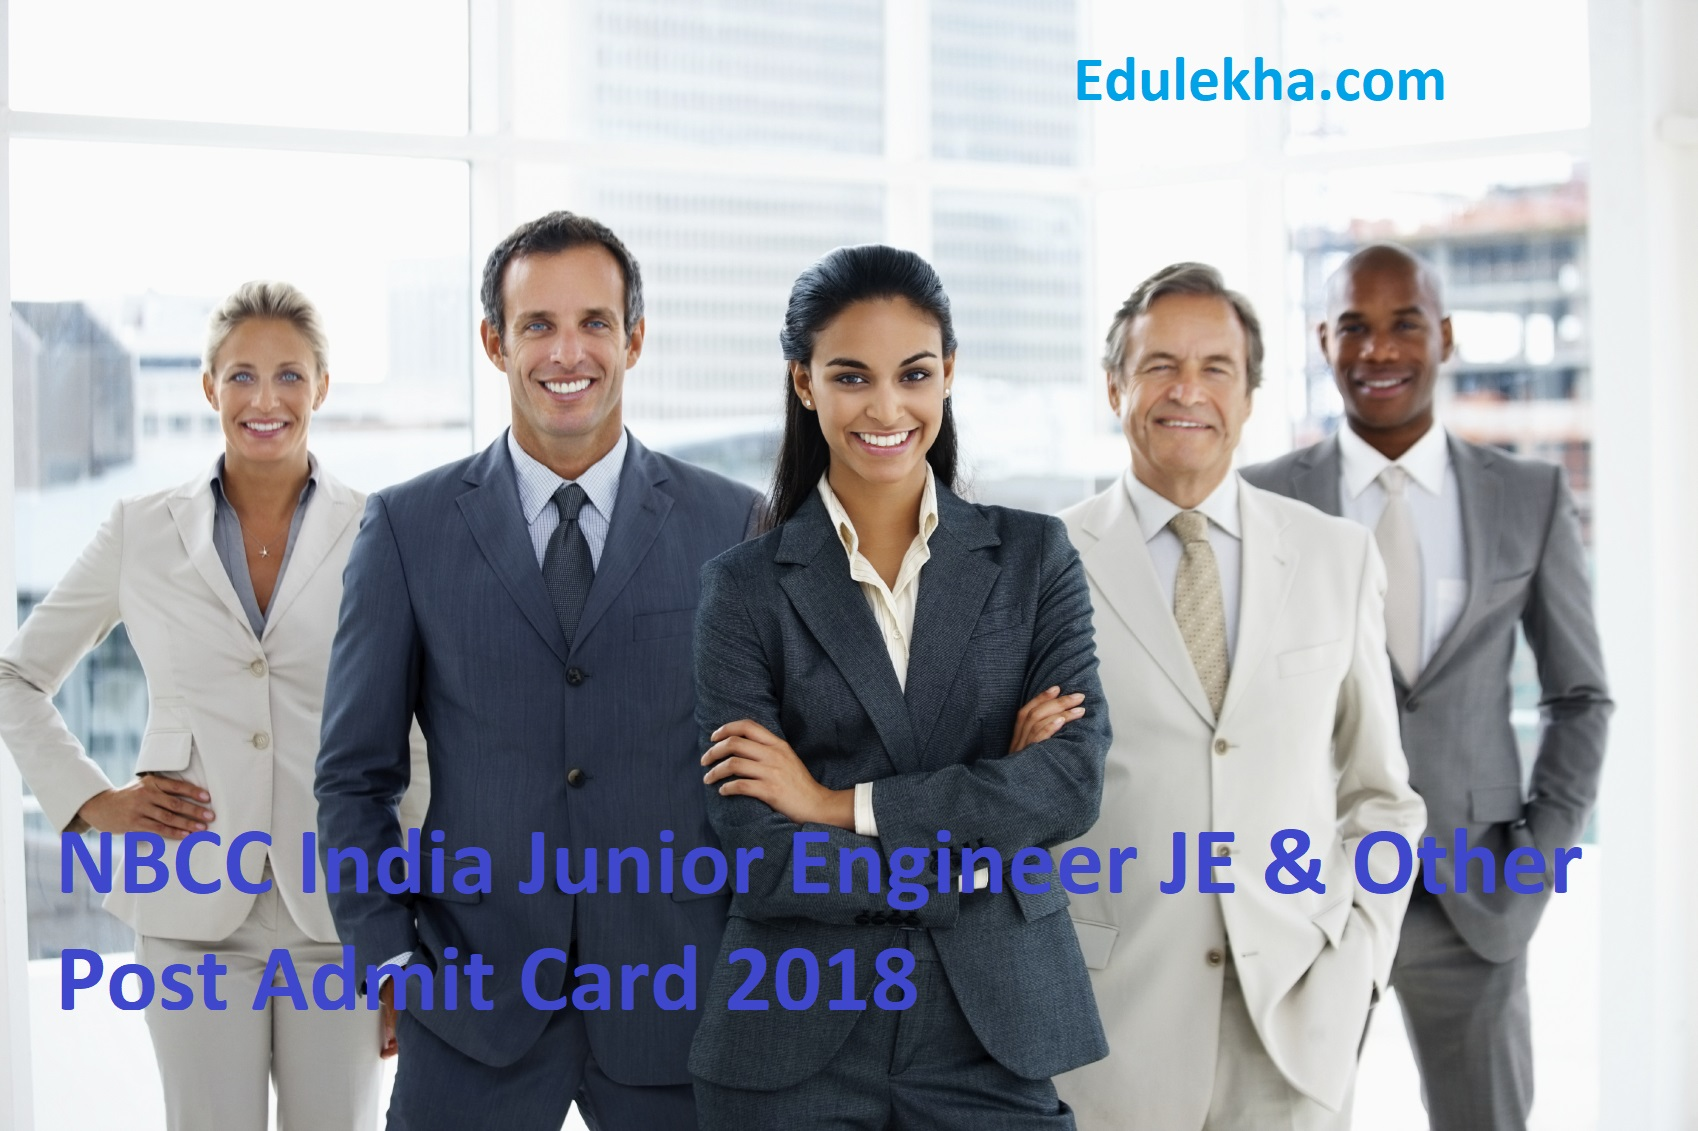 NBCC India Junior Engineer JE & Other Post Admit Card 2018